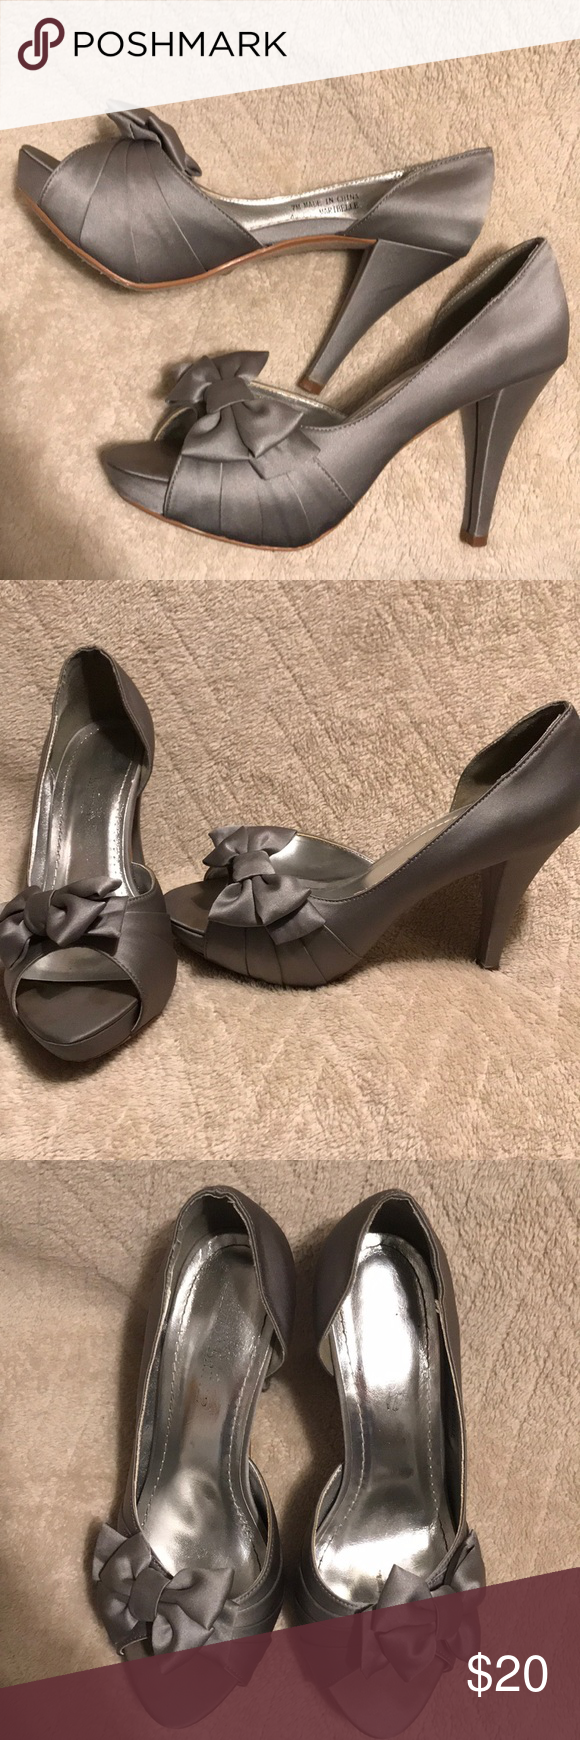 1430584f353a David s Bridal silver bow high heel Satin Peep Toe Platform High Heel with  Bow Detail. From David s Bridal. Size 7. Silver color. Used for two  weddings.